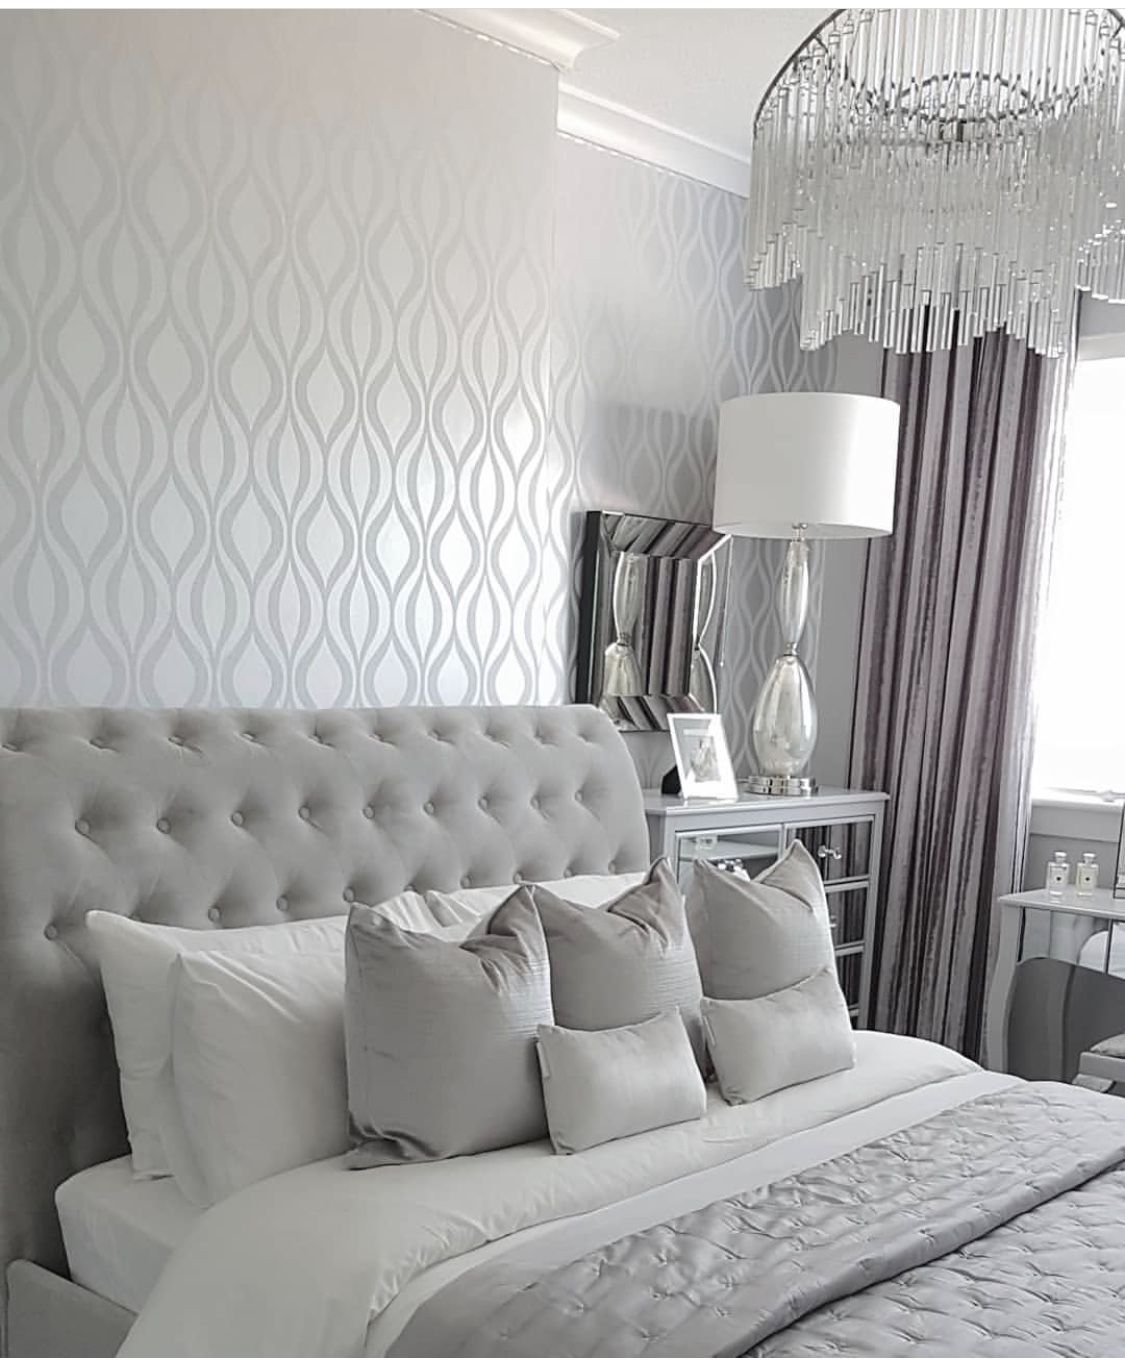 Pin By Elly On Home Improvement Silver Bedroom Silver Bedroom Decor Bedroom Decor